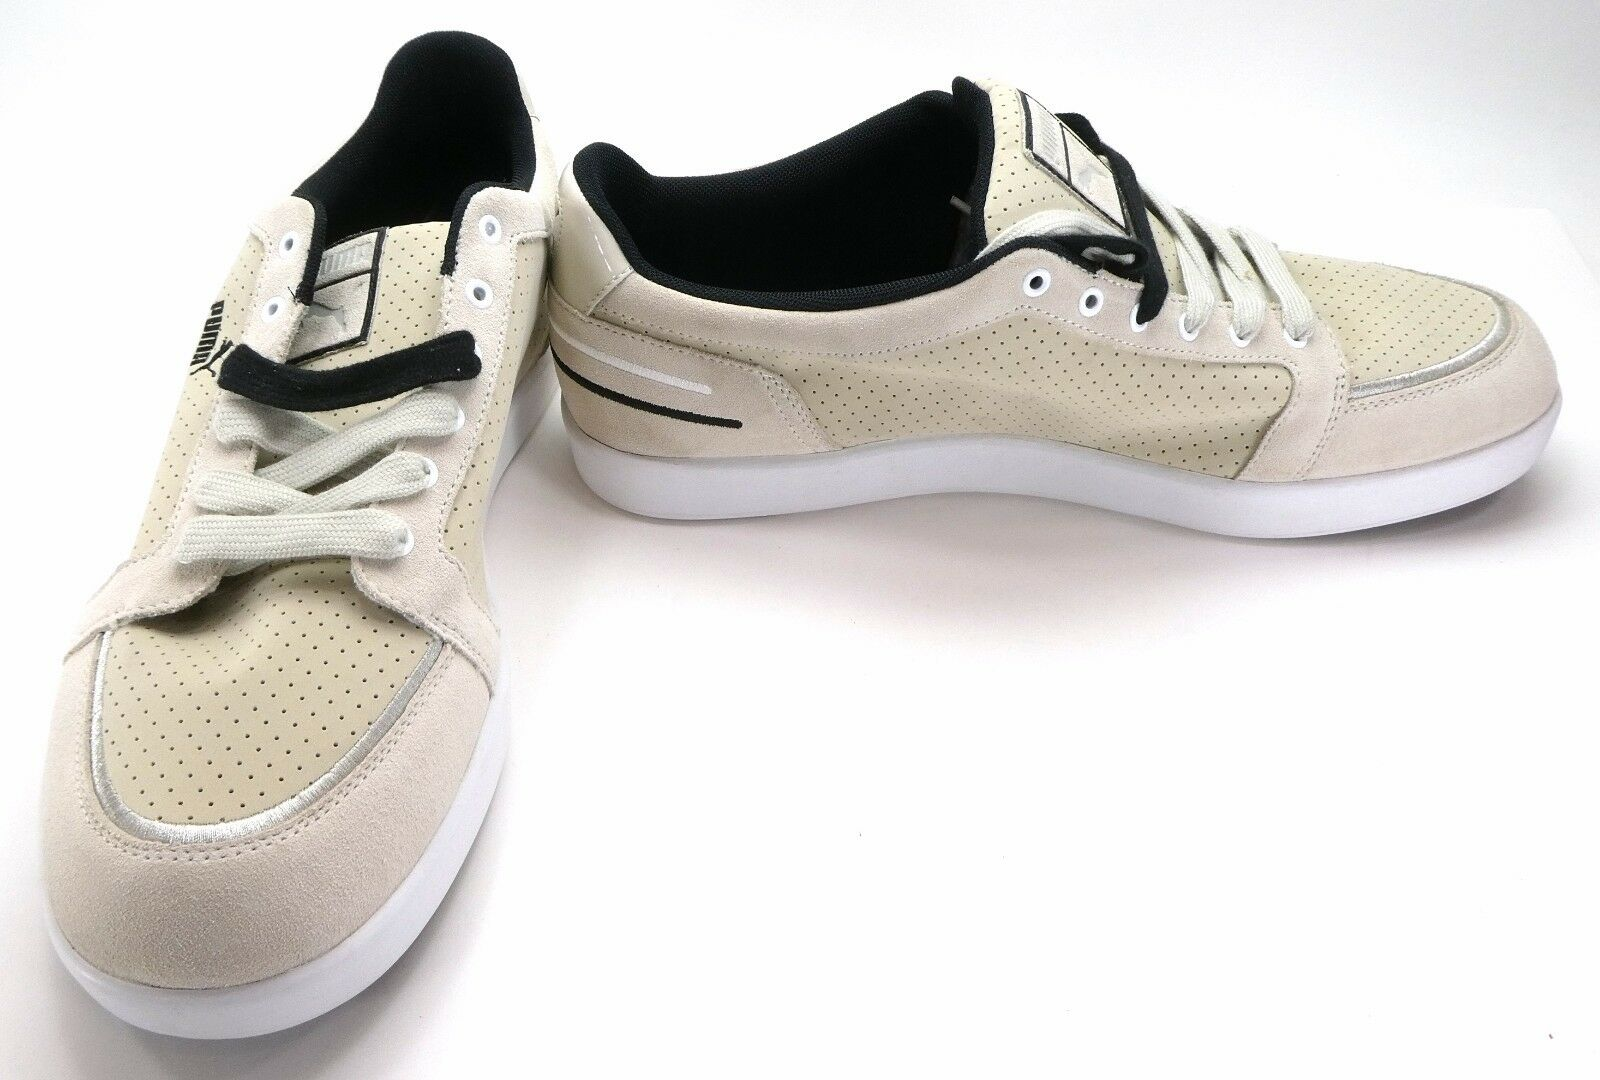 Puma shoes Trip Double Lo Suede Perforated Beige Tan Sneakers Size 12